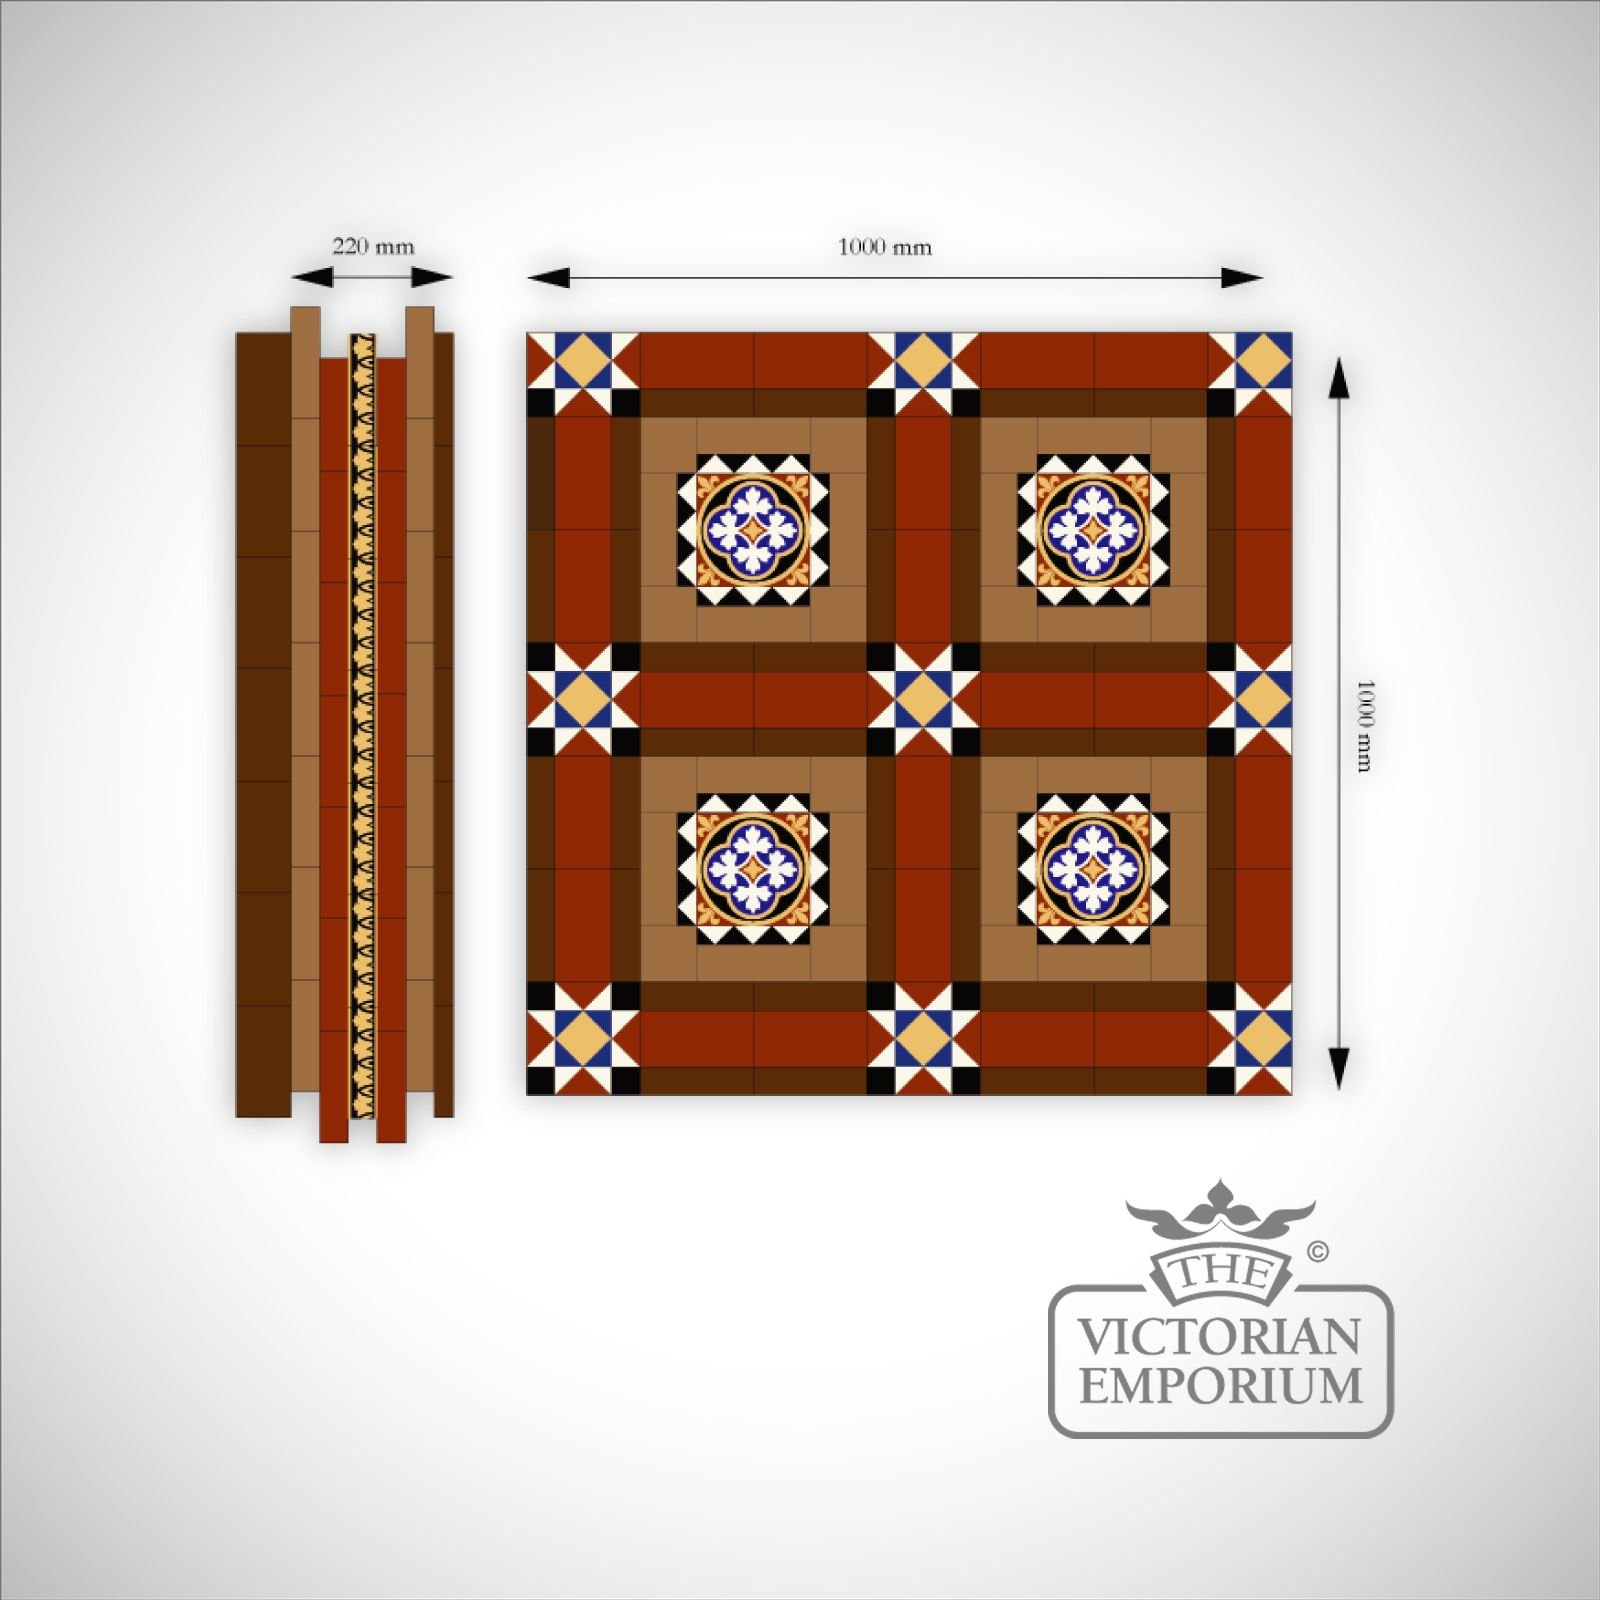 Knowl Mosaic Floor Tiles Inset Centre The Victorian